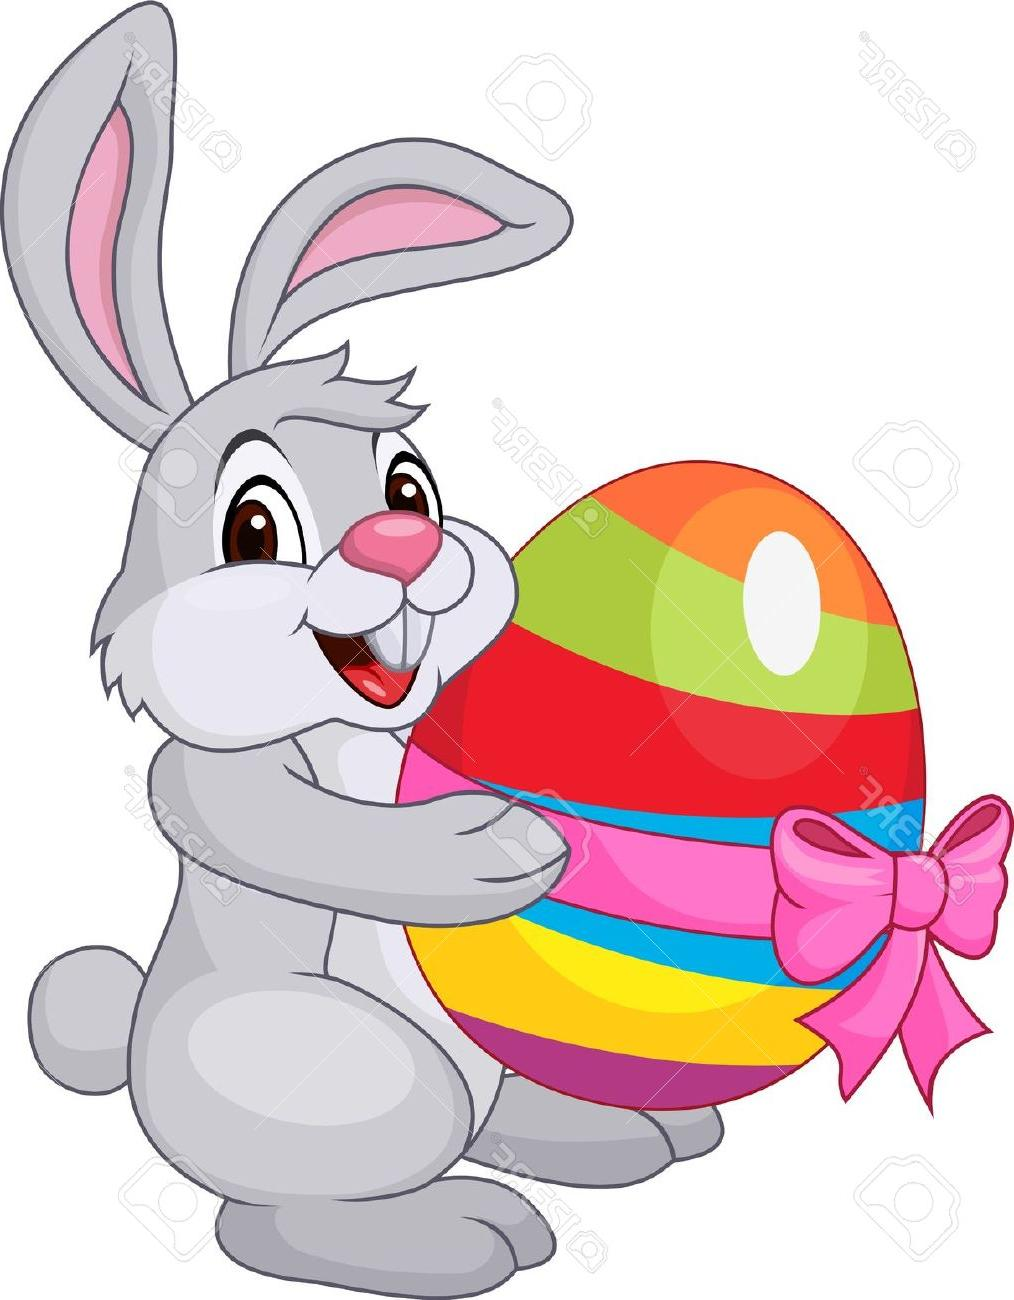 1014x1300 Sturdy Easter Bunny Cartoon Pictures Scary Images Clipart Drawing